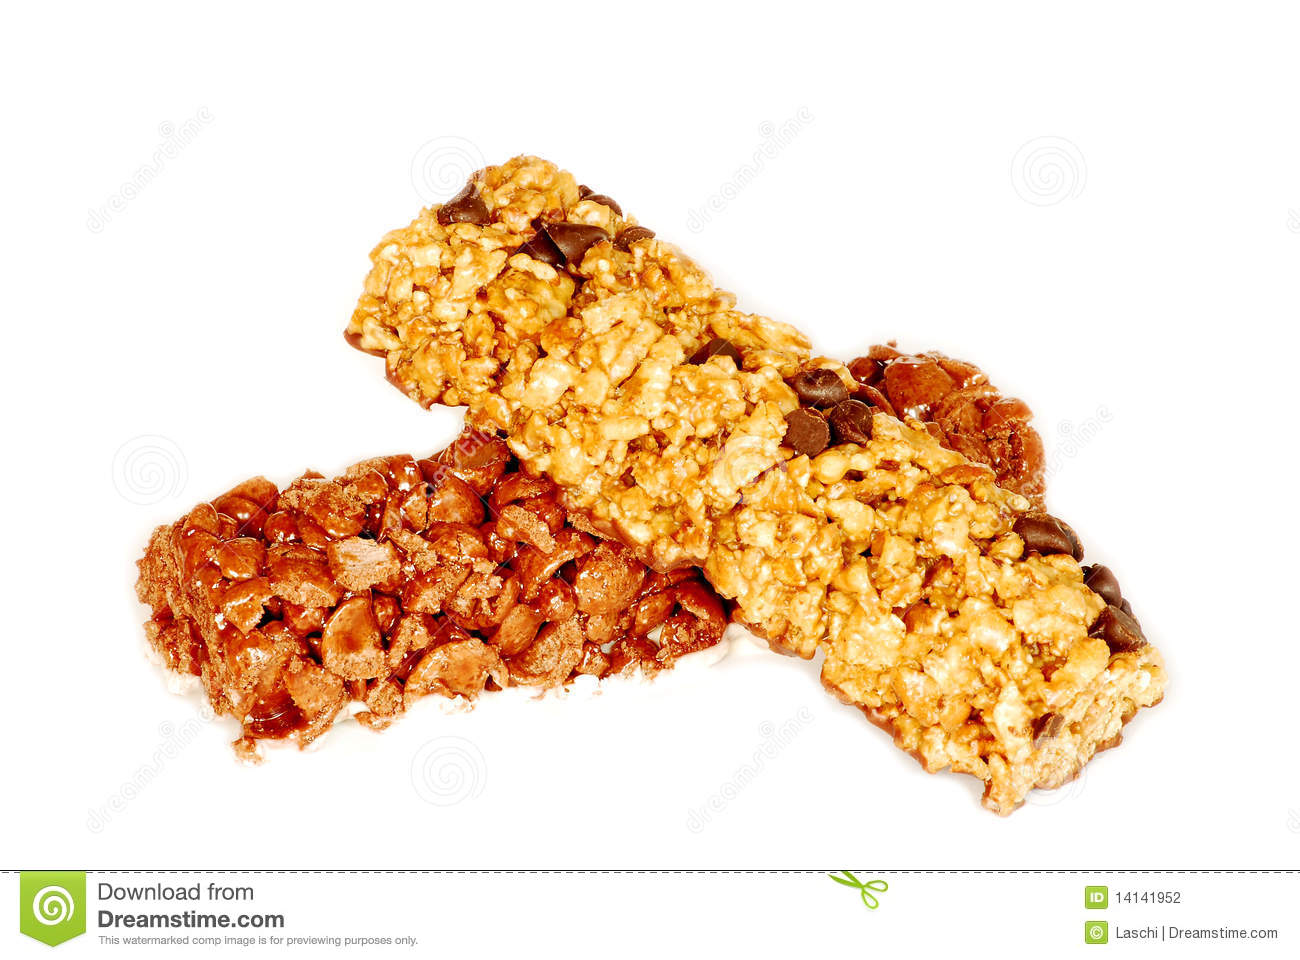 Cereal Bar Stock Photography - Image: 14141952